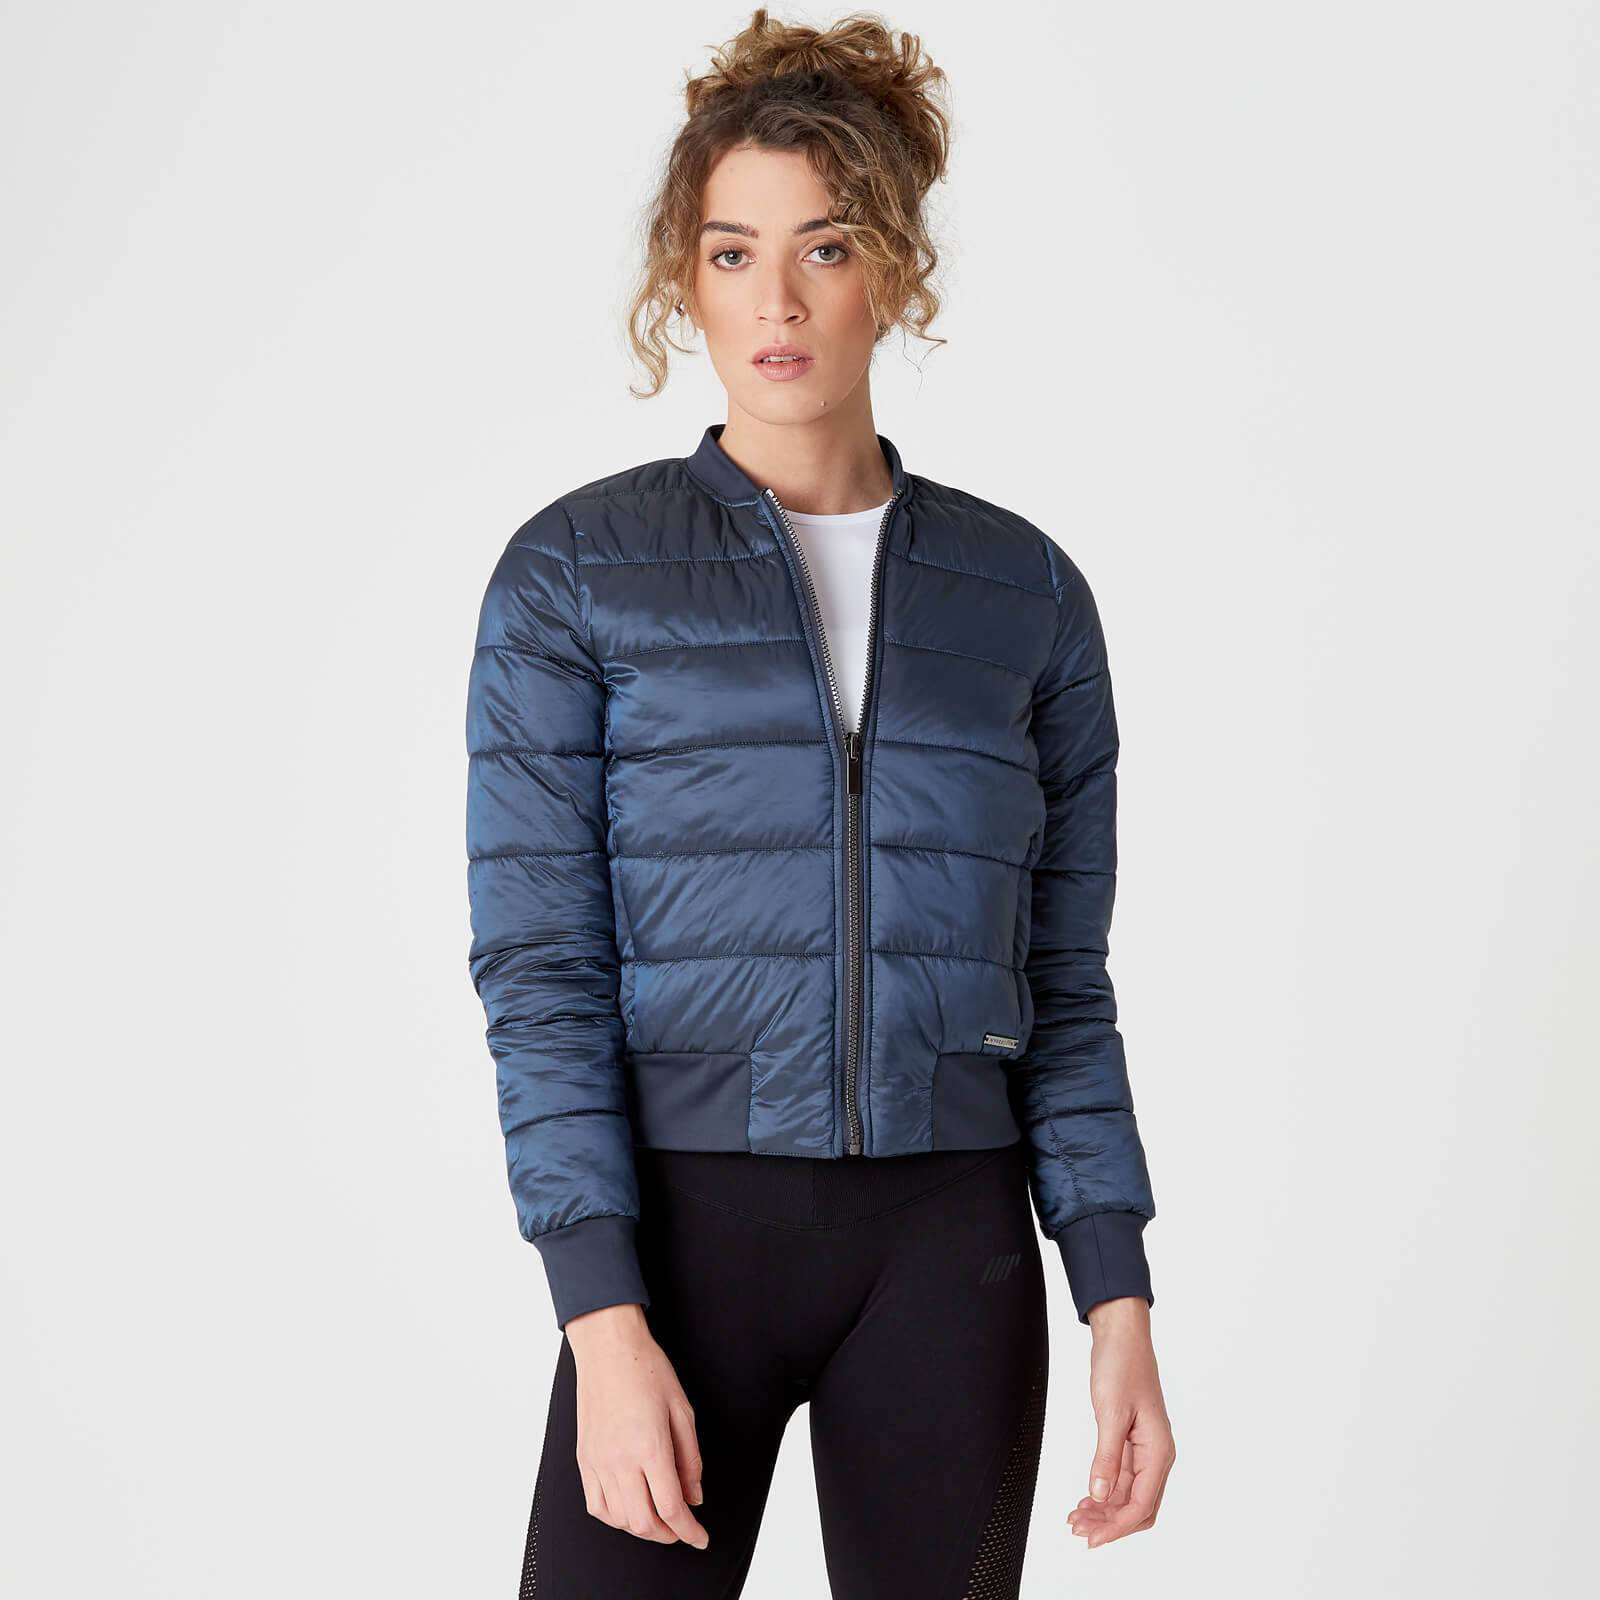 Myprotein MP Reversible Bomber Jacket - Dark Indigo - XL